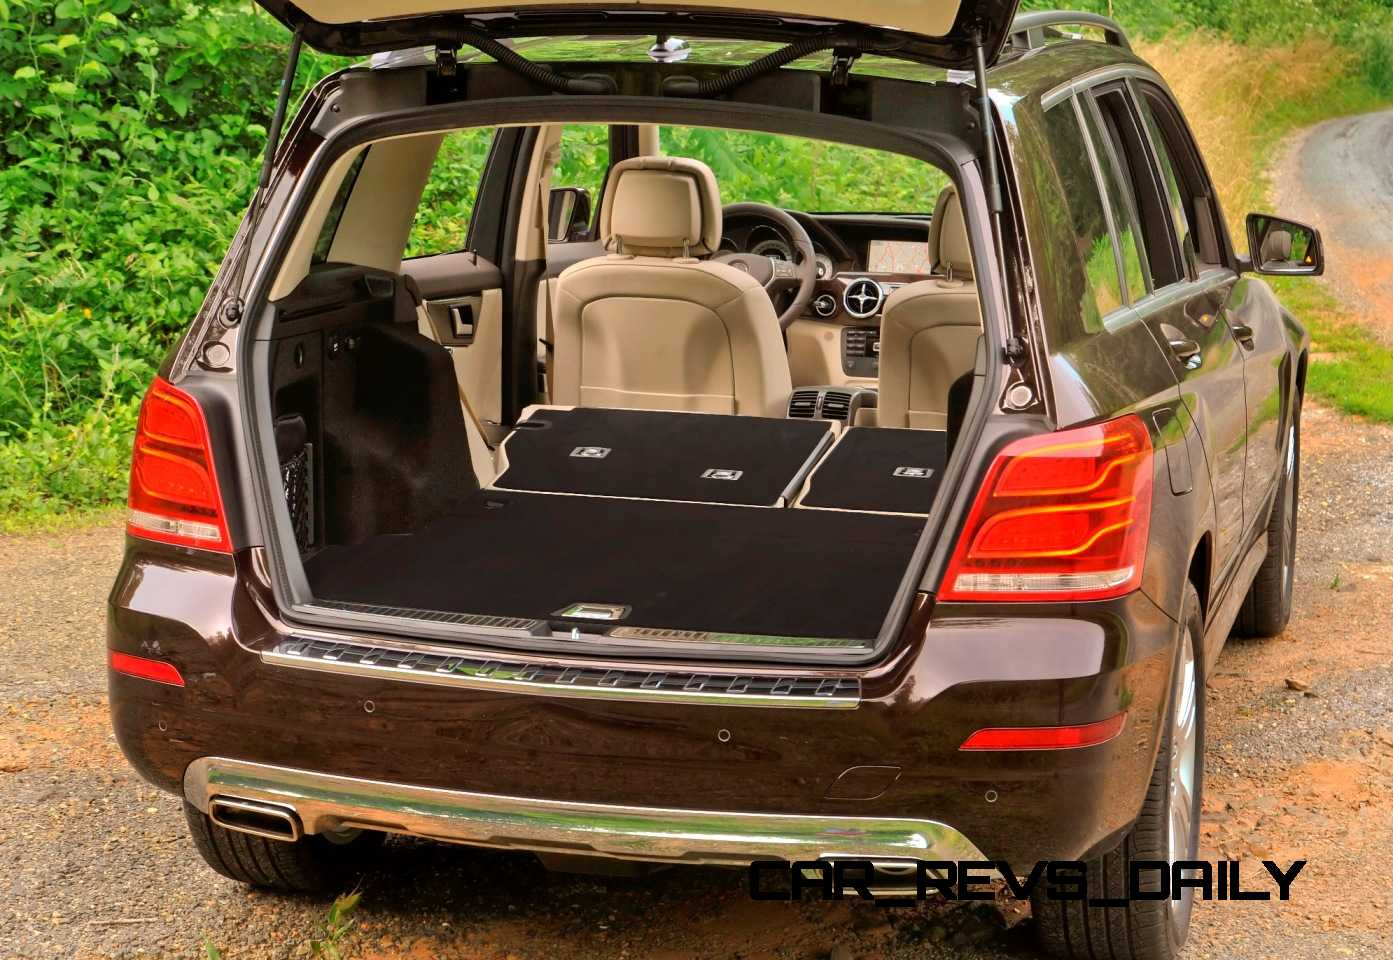 Glk250 diesel joins glk350 from 37 000 buyers guide to for Mercedes benz glx